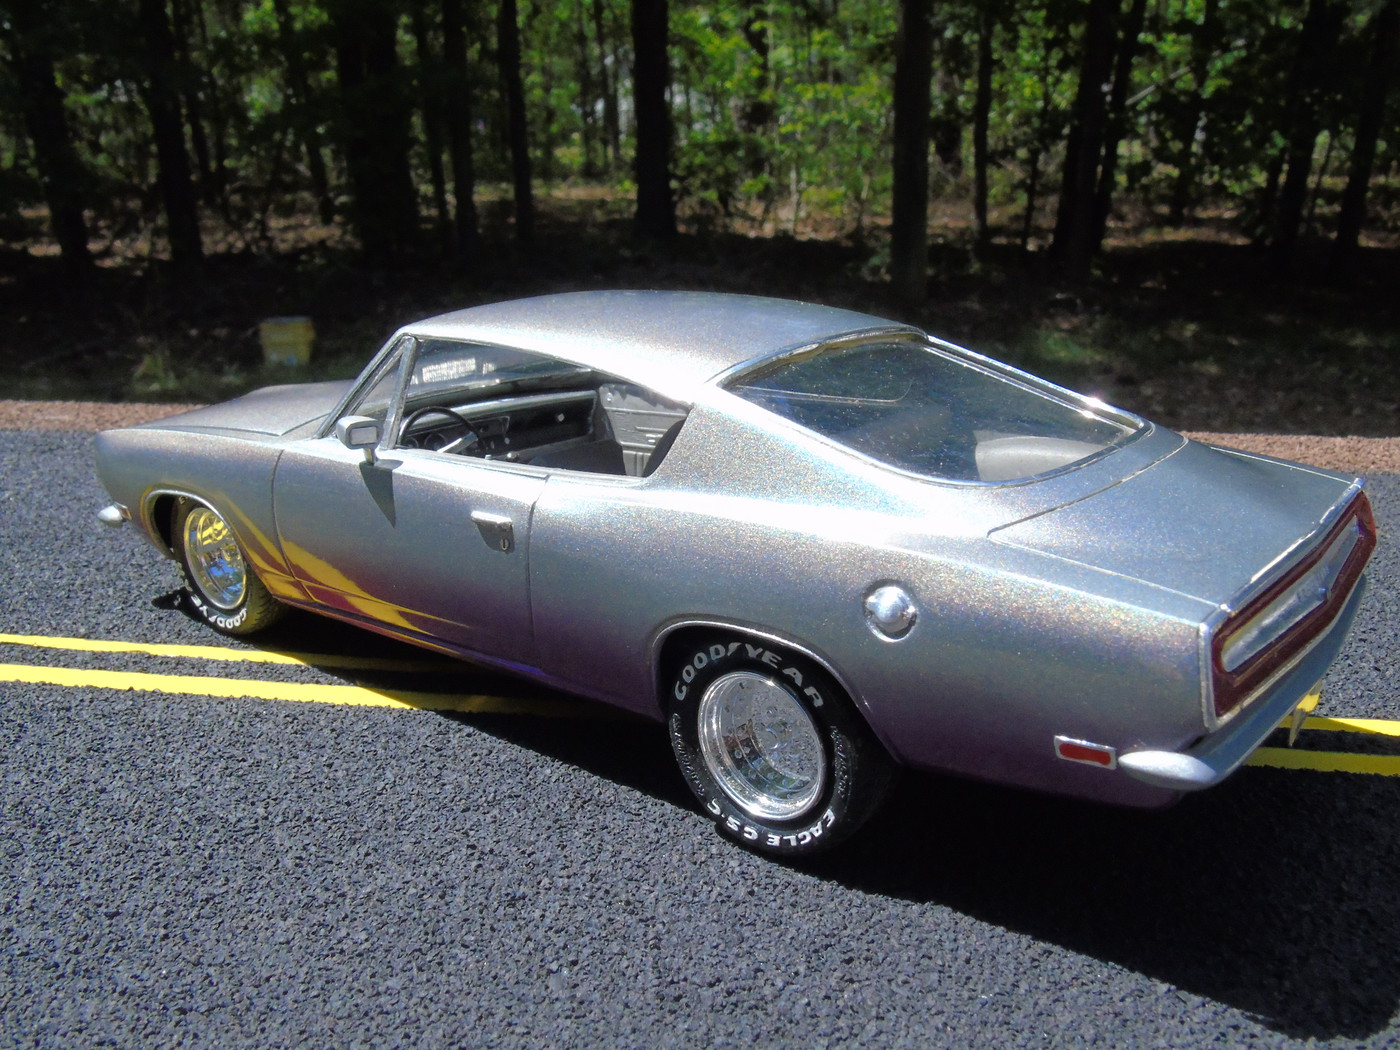 1969 Plymouth Barracuda - The Silverfish 1969Barracuda016-vi